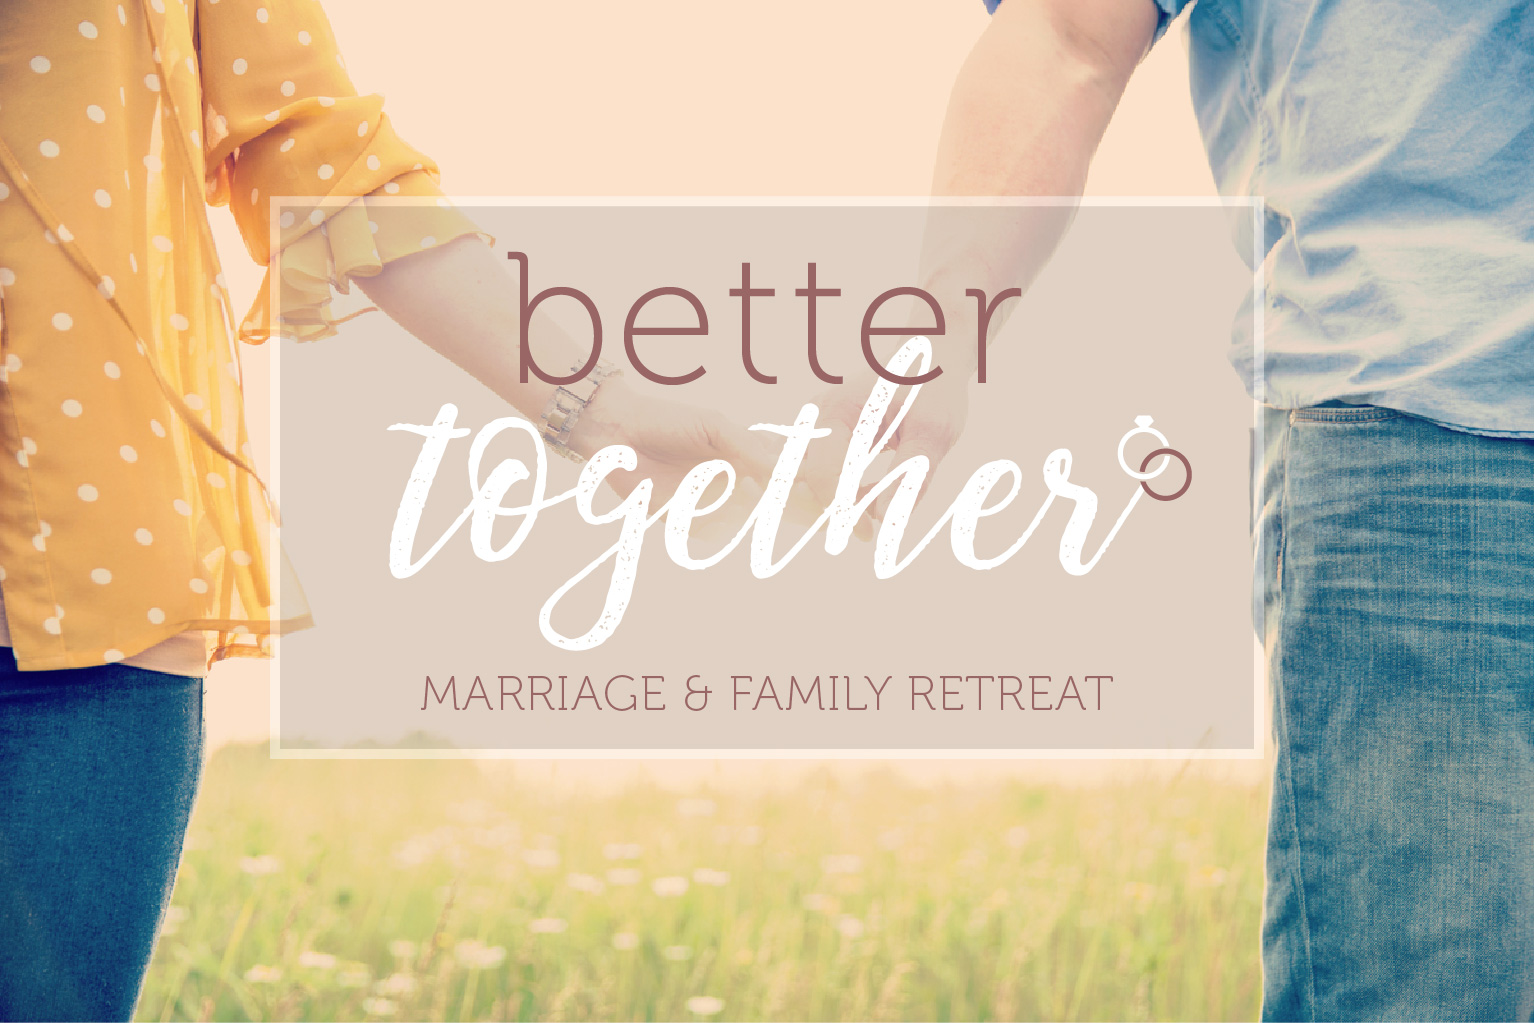 Better together 01